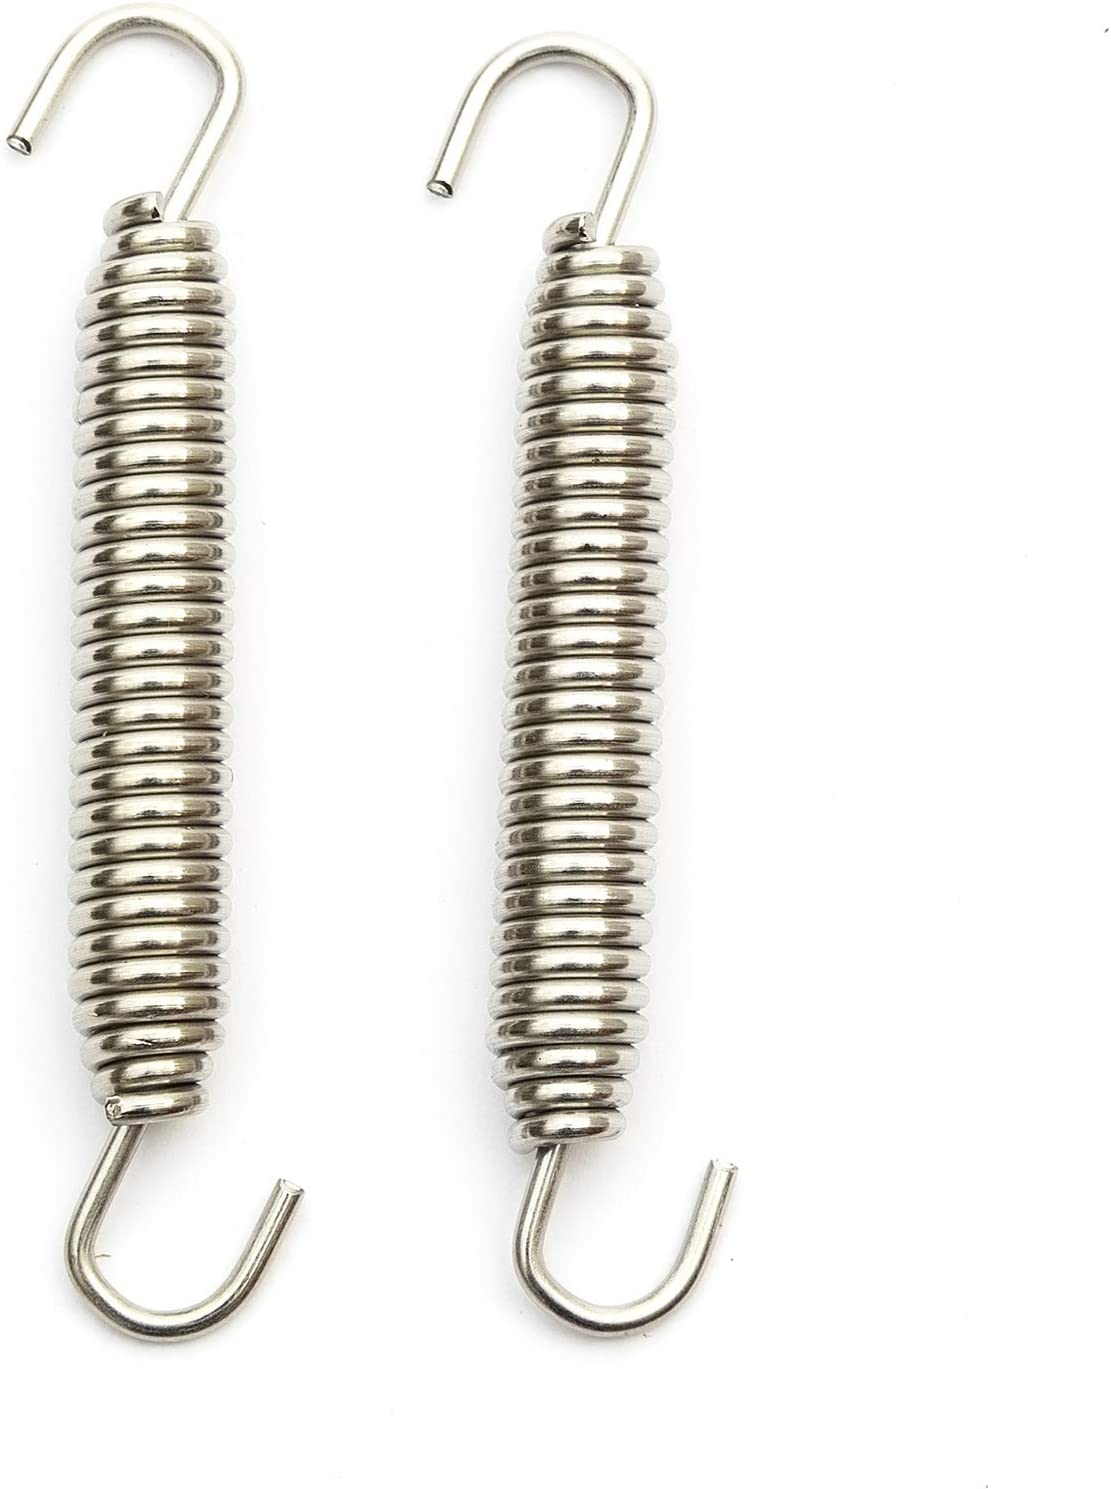 Exhaust Springs x 2 60mm Stainless Steel Motorcycle